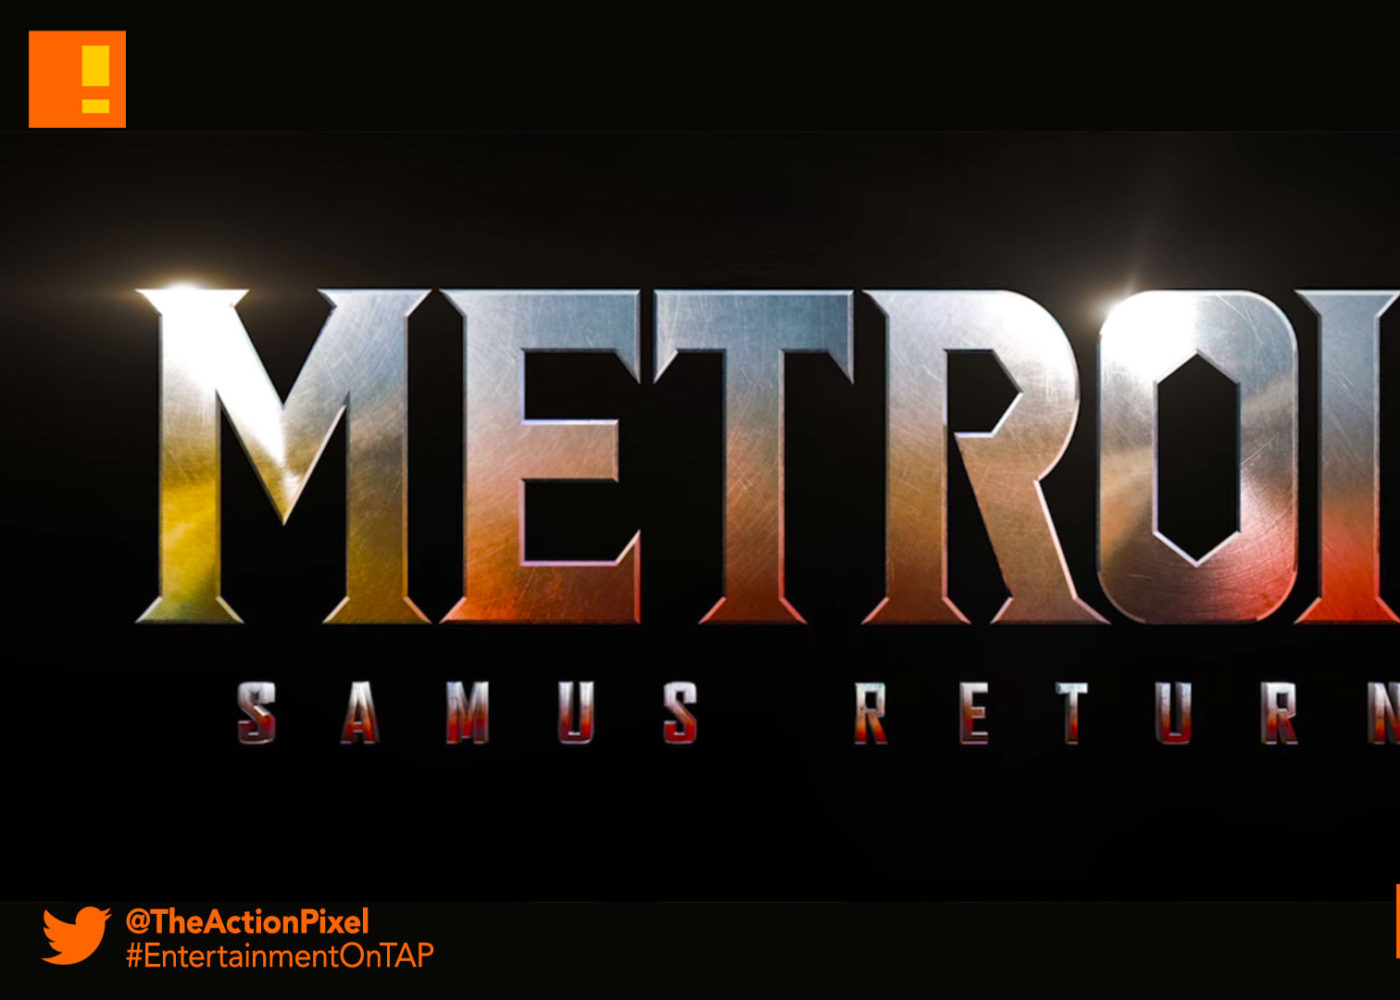 metroid: samus returns, metroid, samus returns, the action pixel, entertainment on tap,